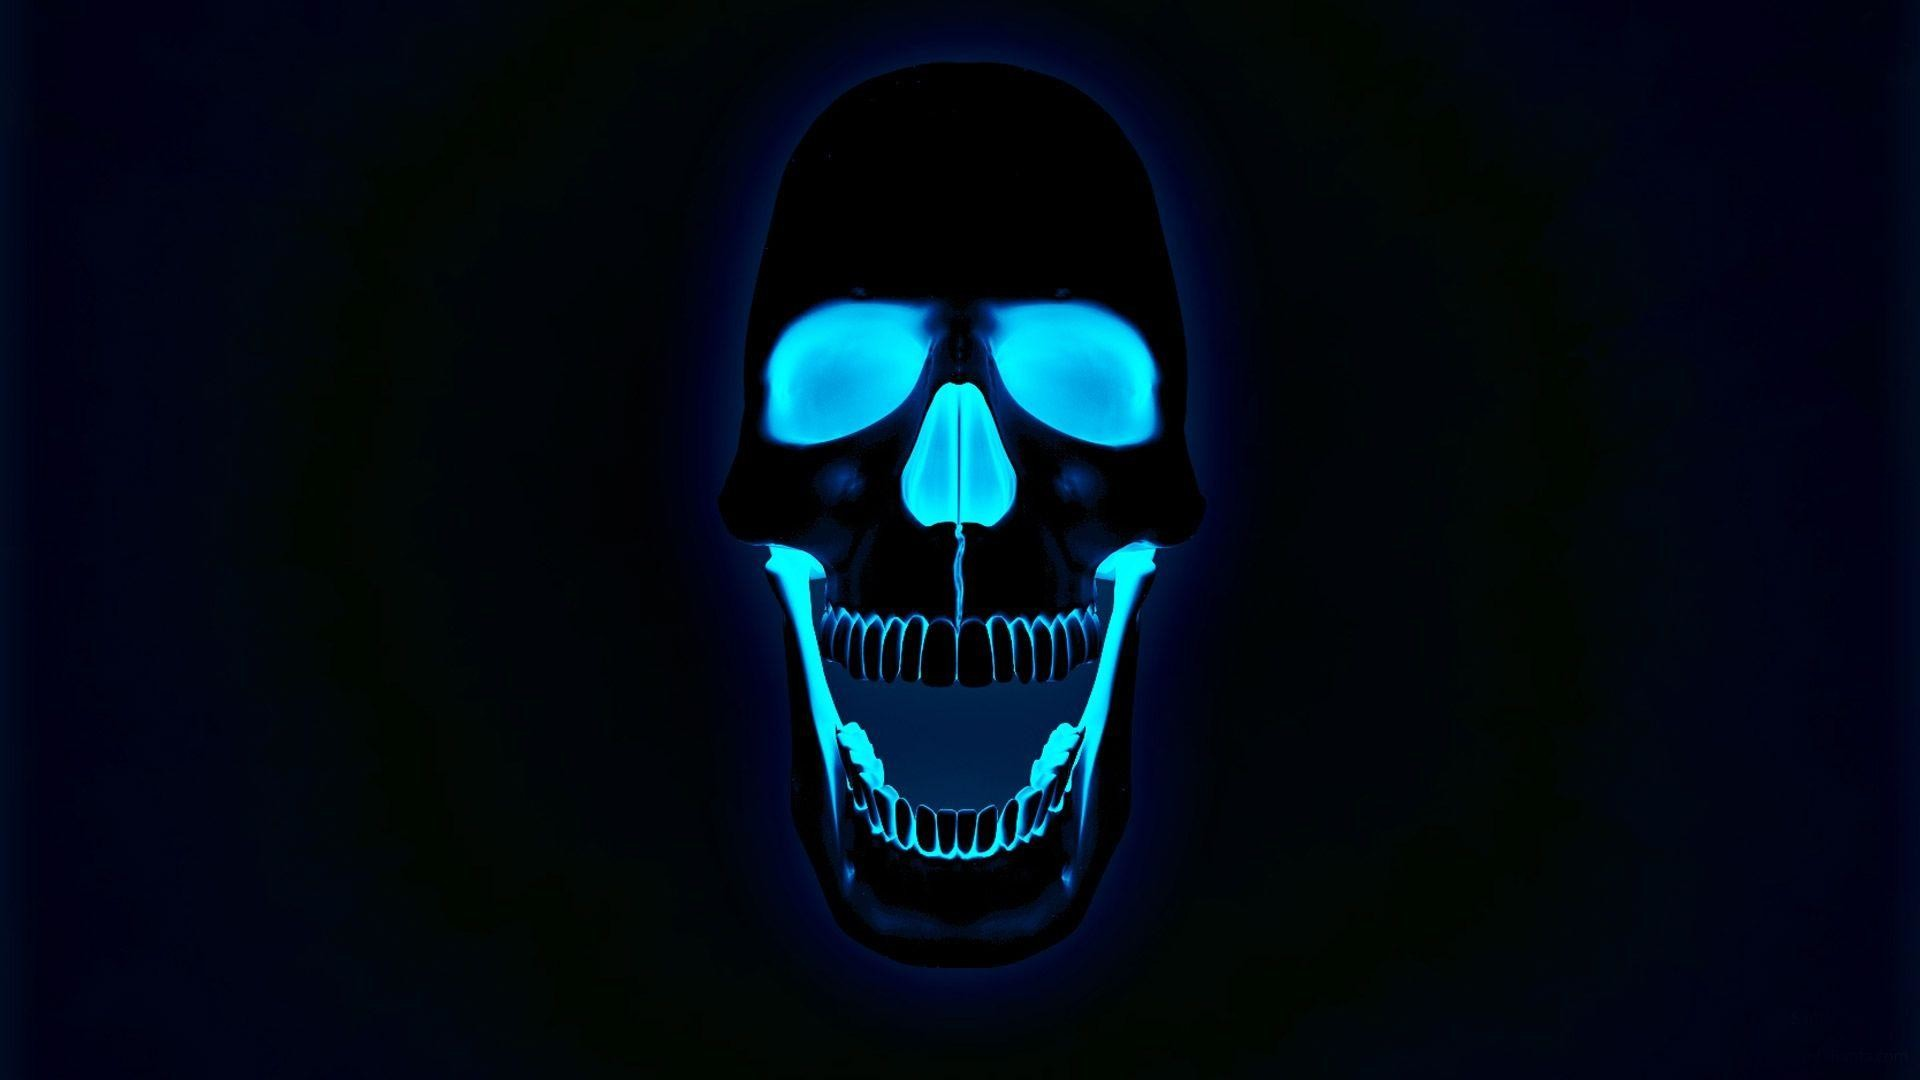 Skull Wallpapers For Android ① Wallpapertag